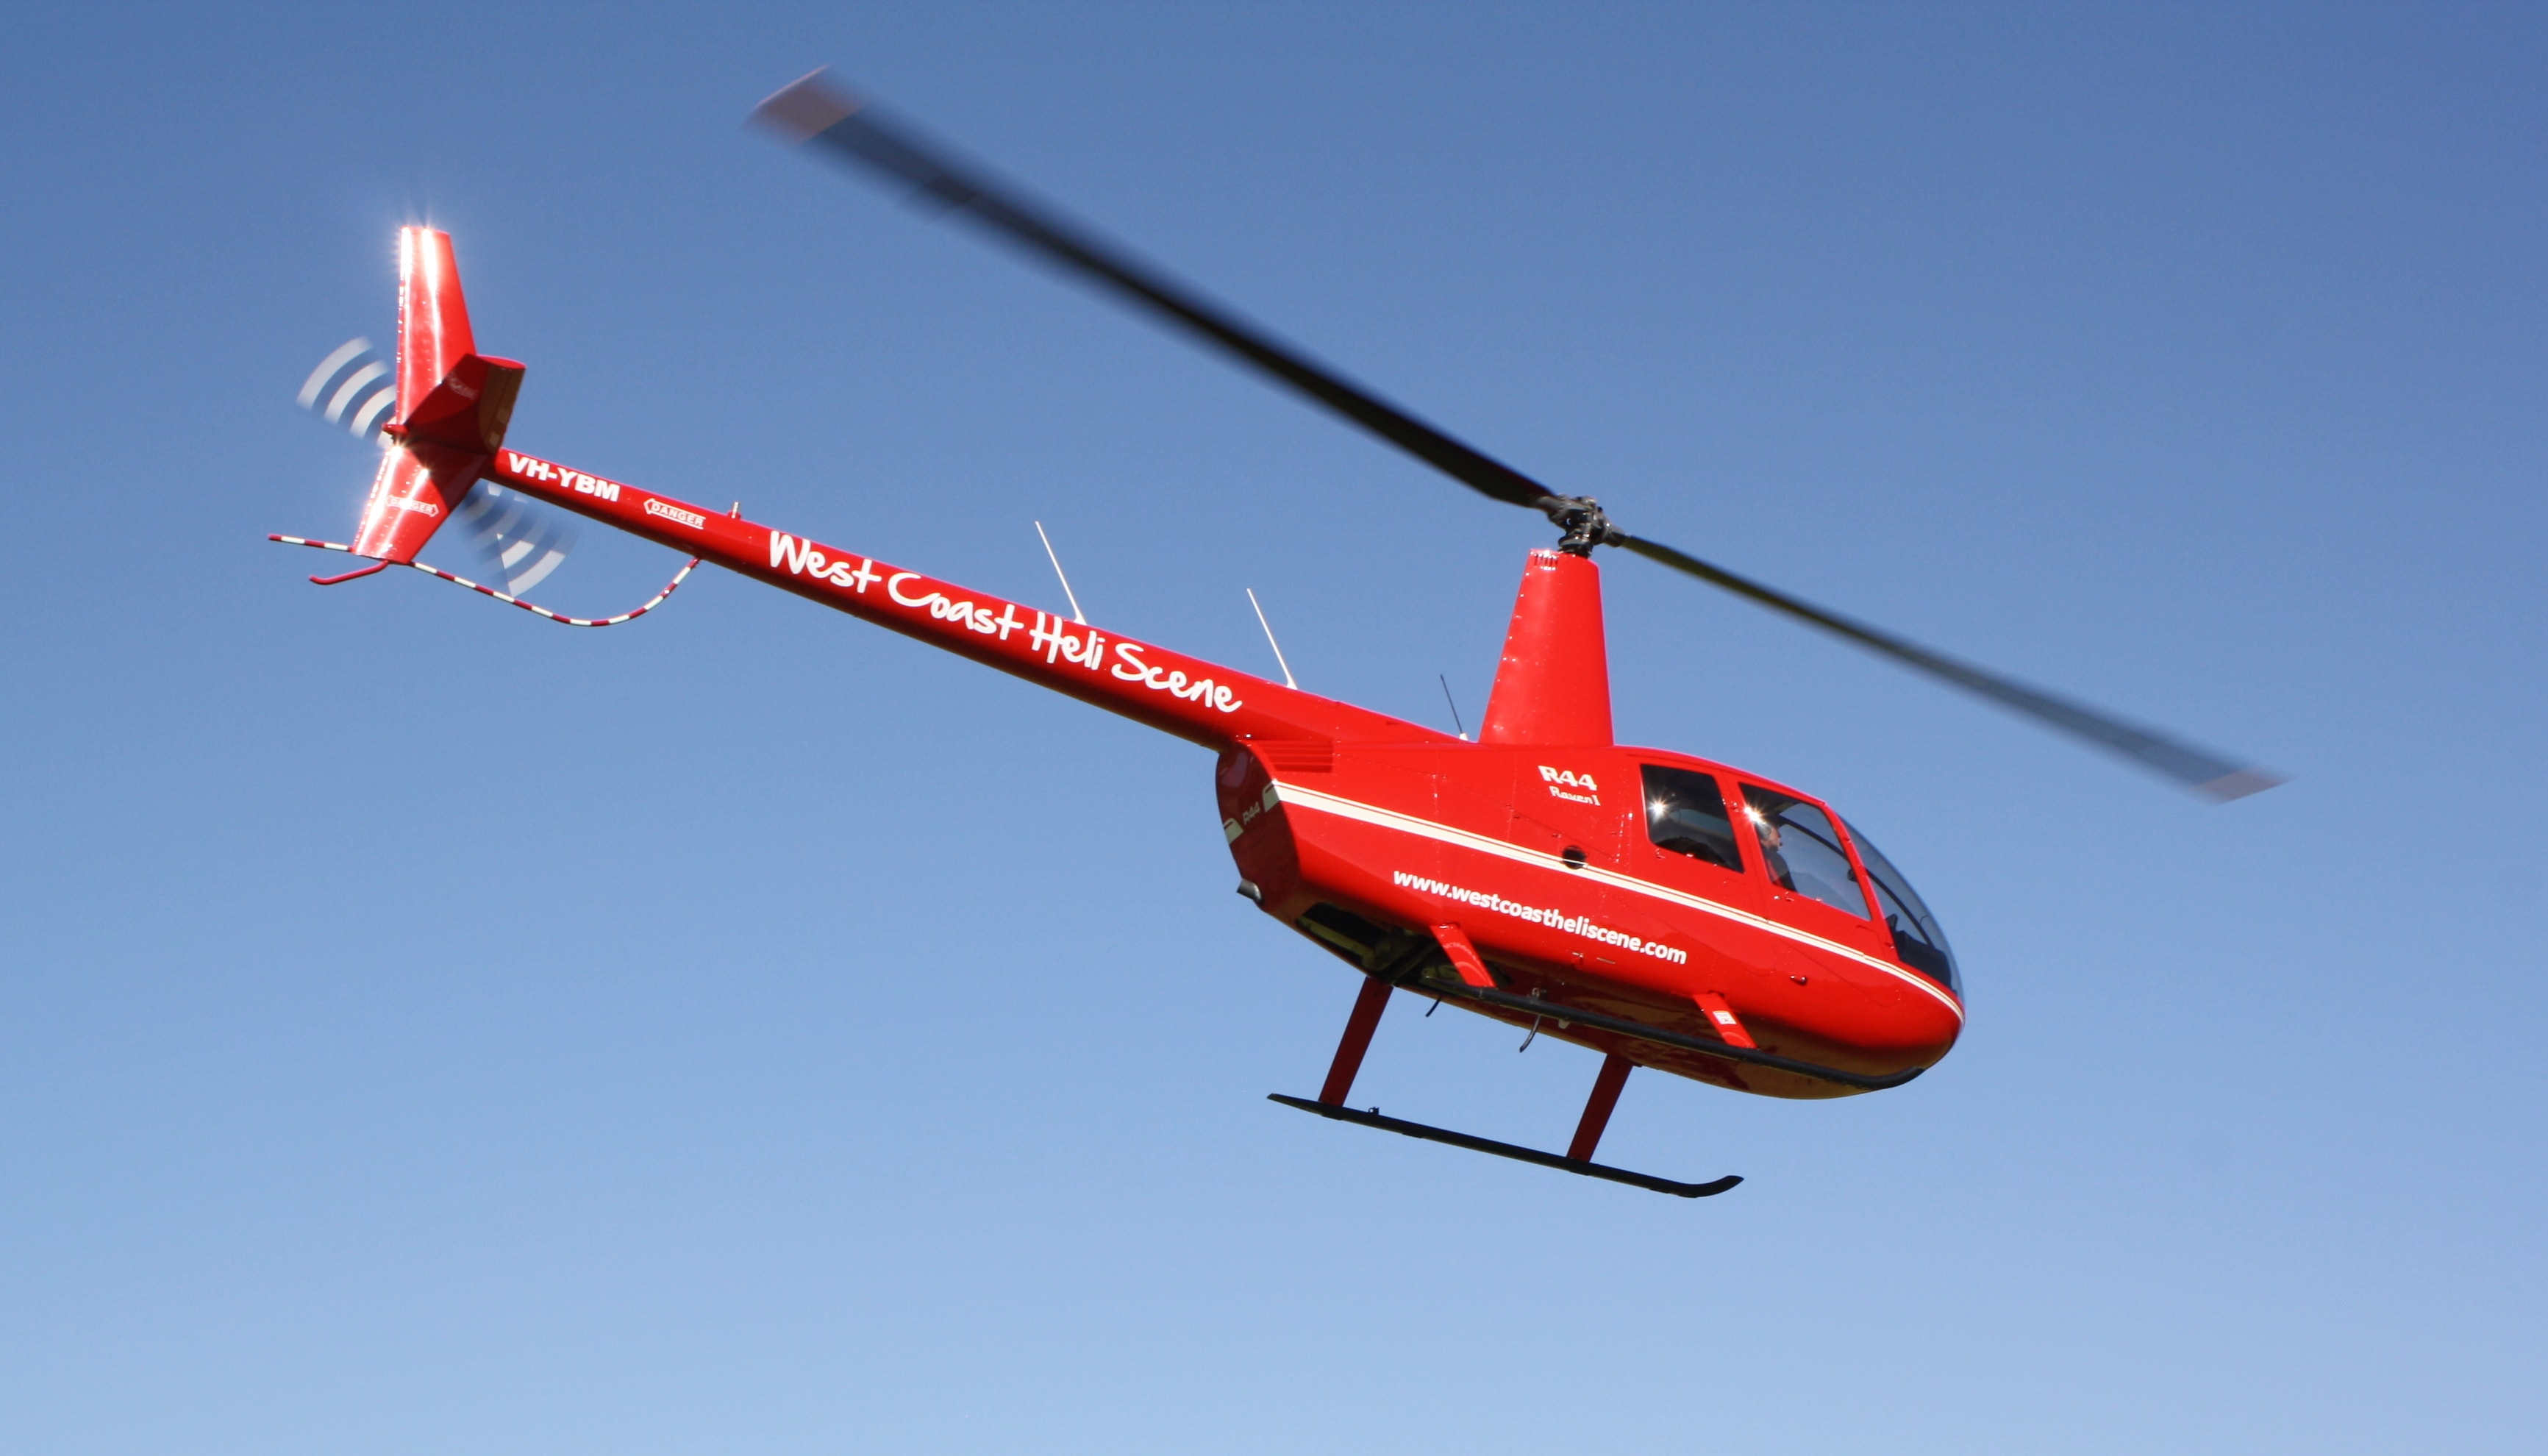 Helicopter Scenic Flight for 3 people, Ocean Reef Marina - 25 minute, Yanchep, Perth